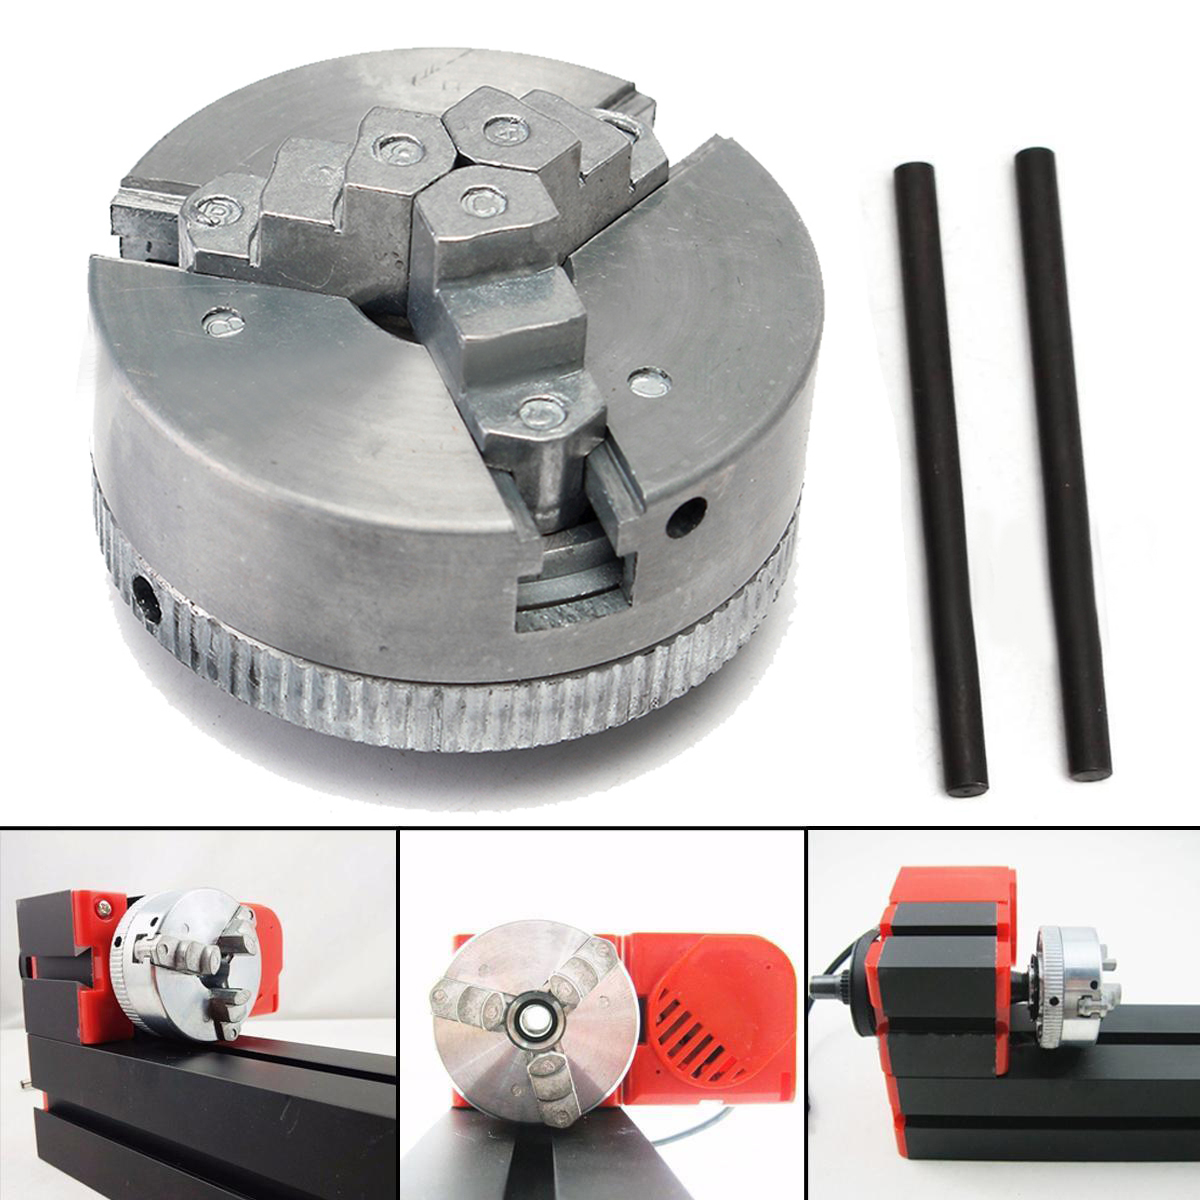 1pc 3 Jaw Lathe Chuck Metal Self Centering Hardened Chuck M12x1 45mm + 2pcs Lock Rods with Shock Resistance ткань портьерная garden выс 280см серая